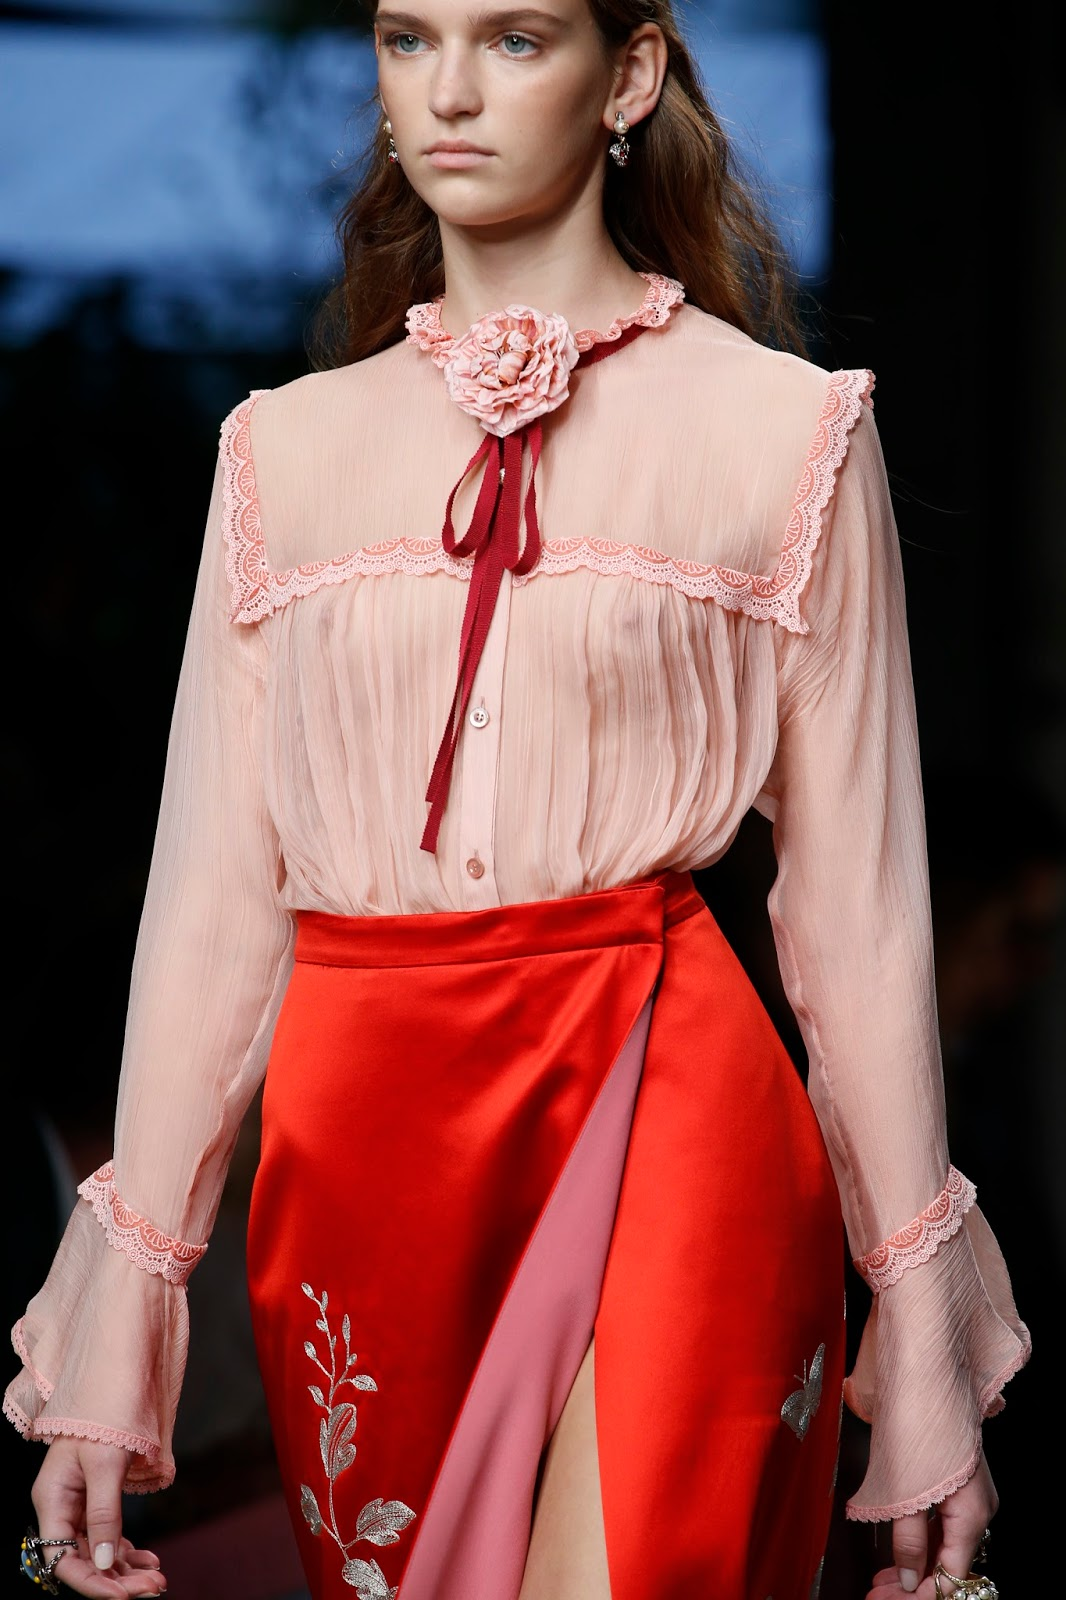 Spring/Summer 2016 trend report / Gucci SS16 / ribbons & bows via www.fashionedbylove.co.uk